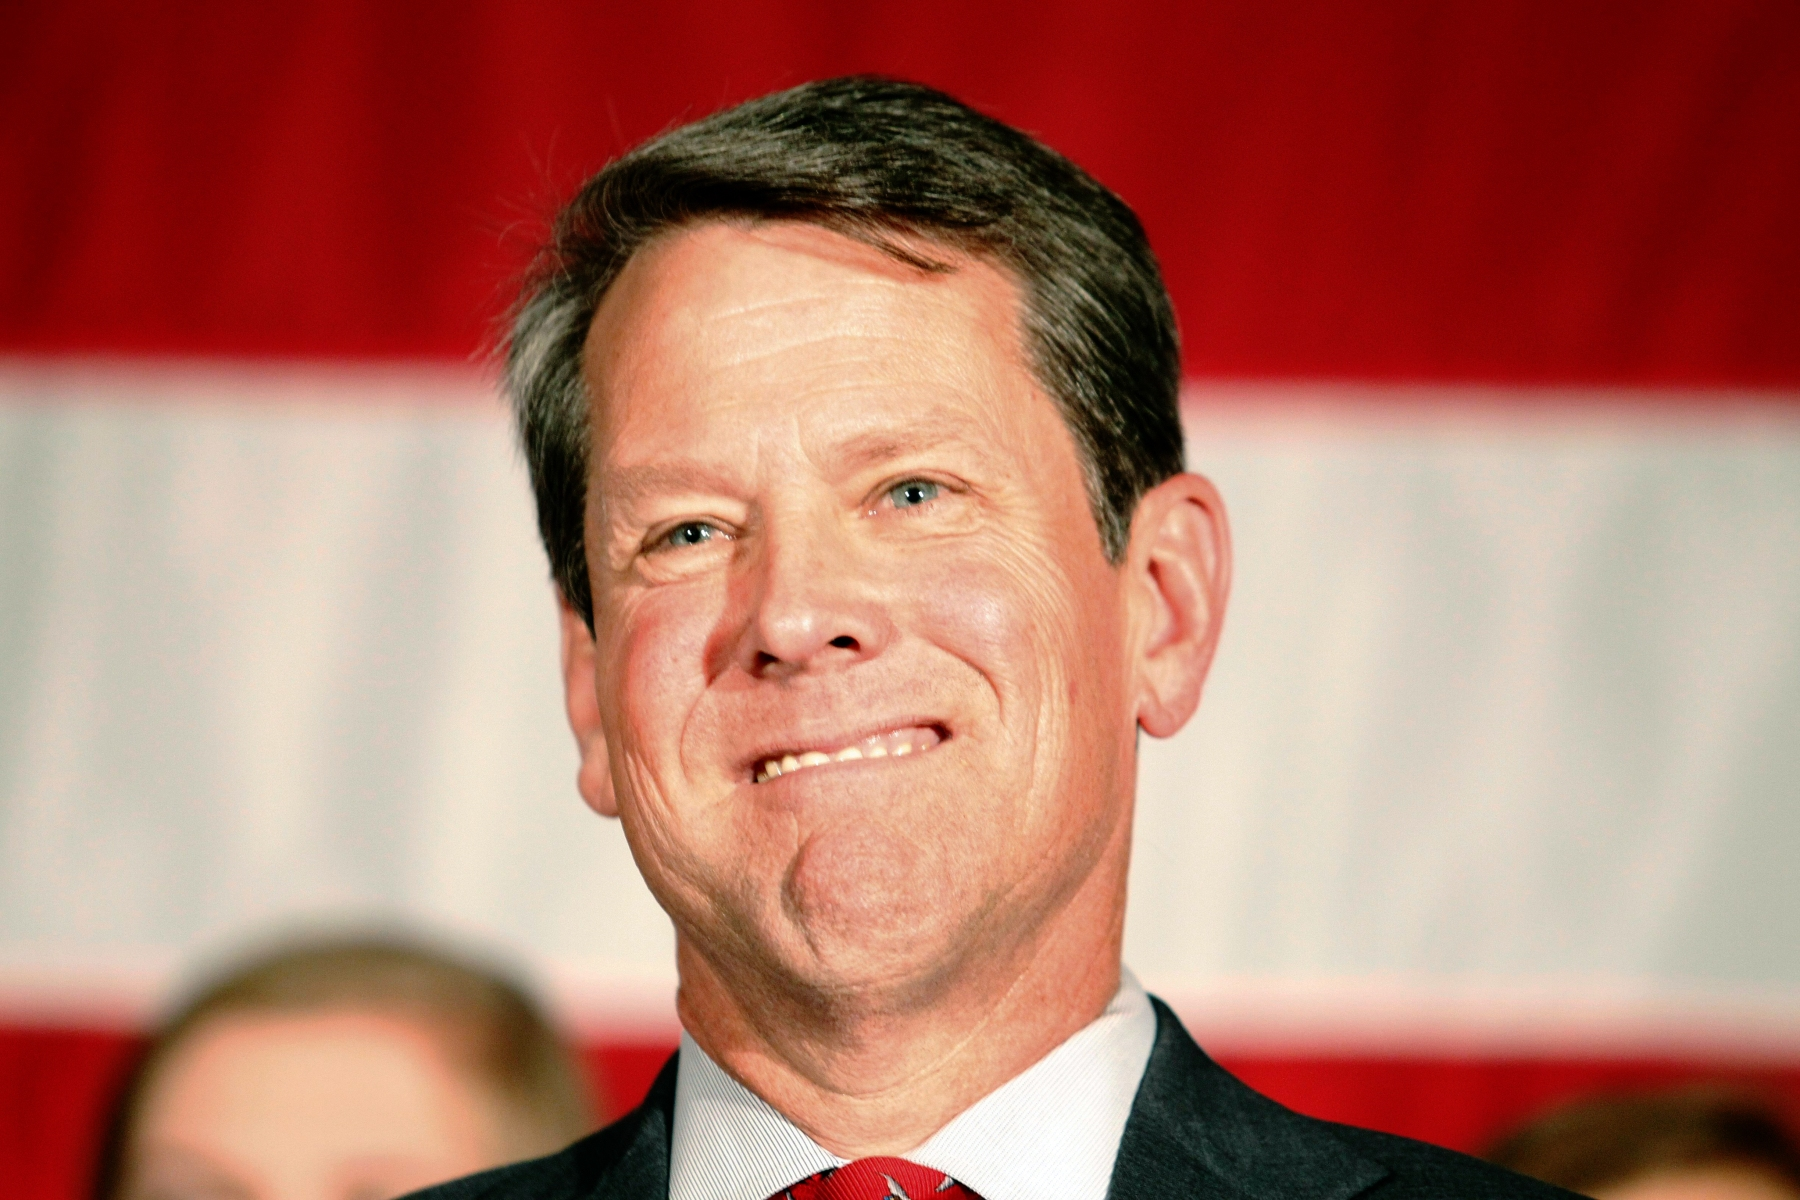 Georgia gubernatorial nominee Brian Kemp smiles as he participates in a Georgia Republican Party Unity Rally in Peachtree Corners, Georgia, USA, 26 July 2018. The event comes on the heels of a bitter GOP gubernatorial runoff election in which Brian Kemp defeated Casey Cagle.Georgia Republican Party Unity Rally, Peachtree Corners, USA - 26 Jul 2018